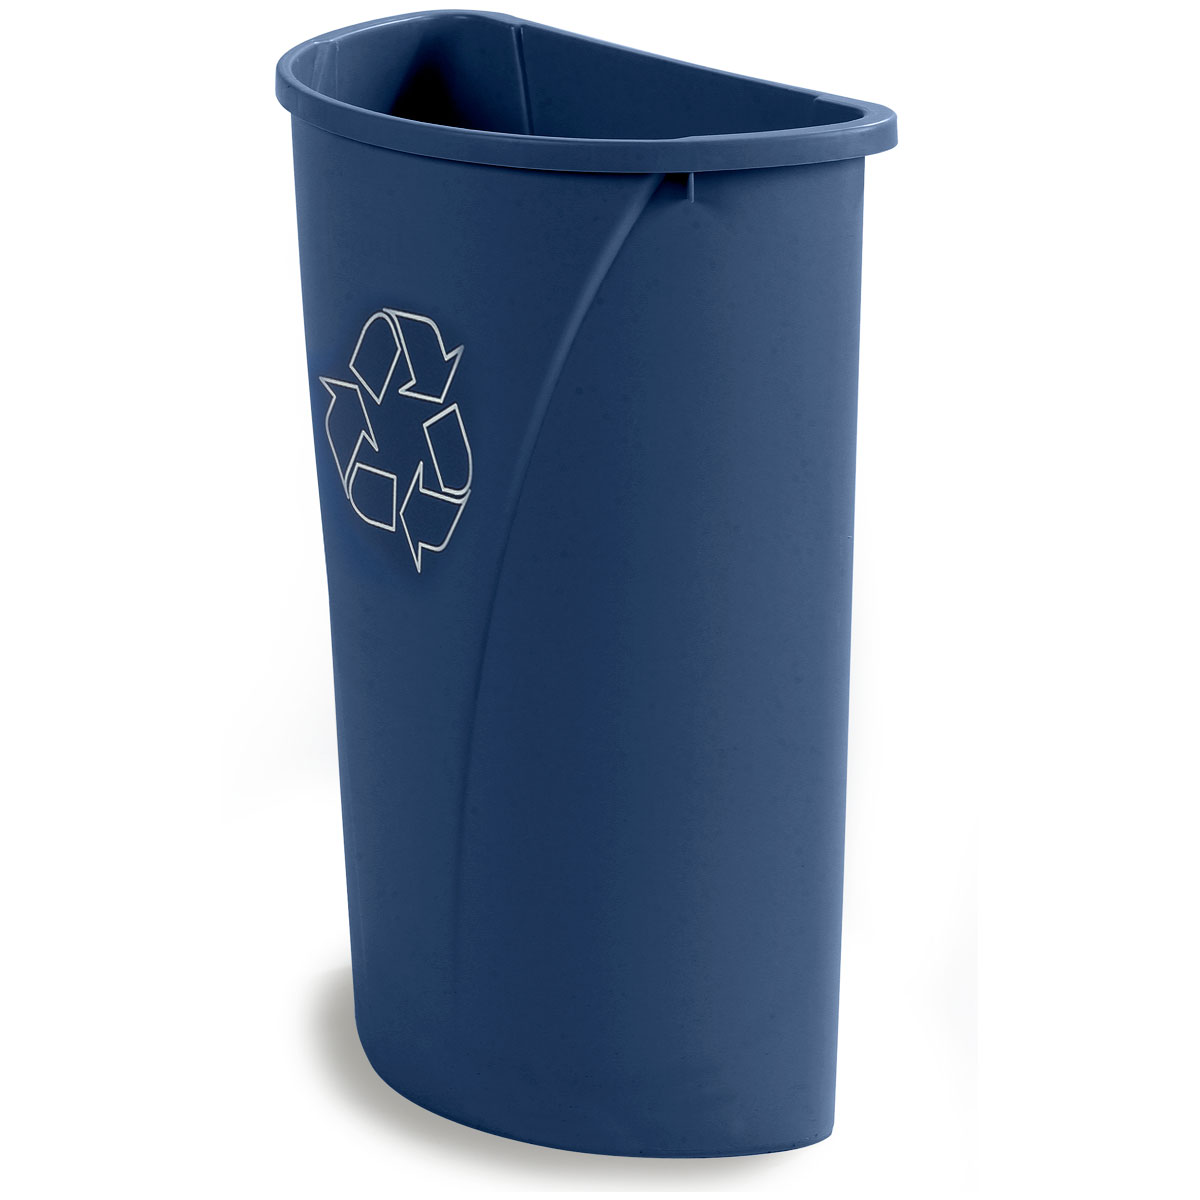 Carlisle 343021REC-14 10.3-gal Multiple Materials Recycle Bin - Indoor